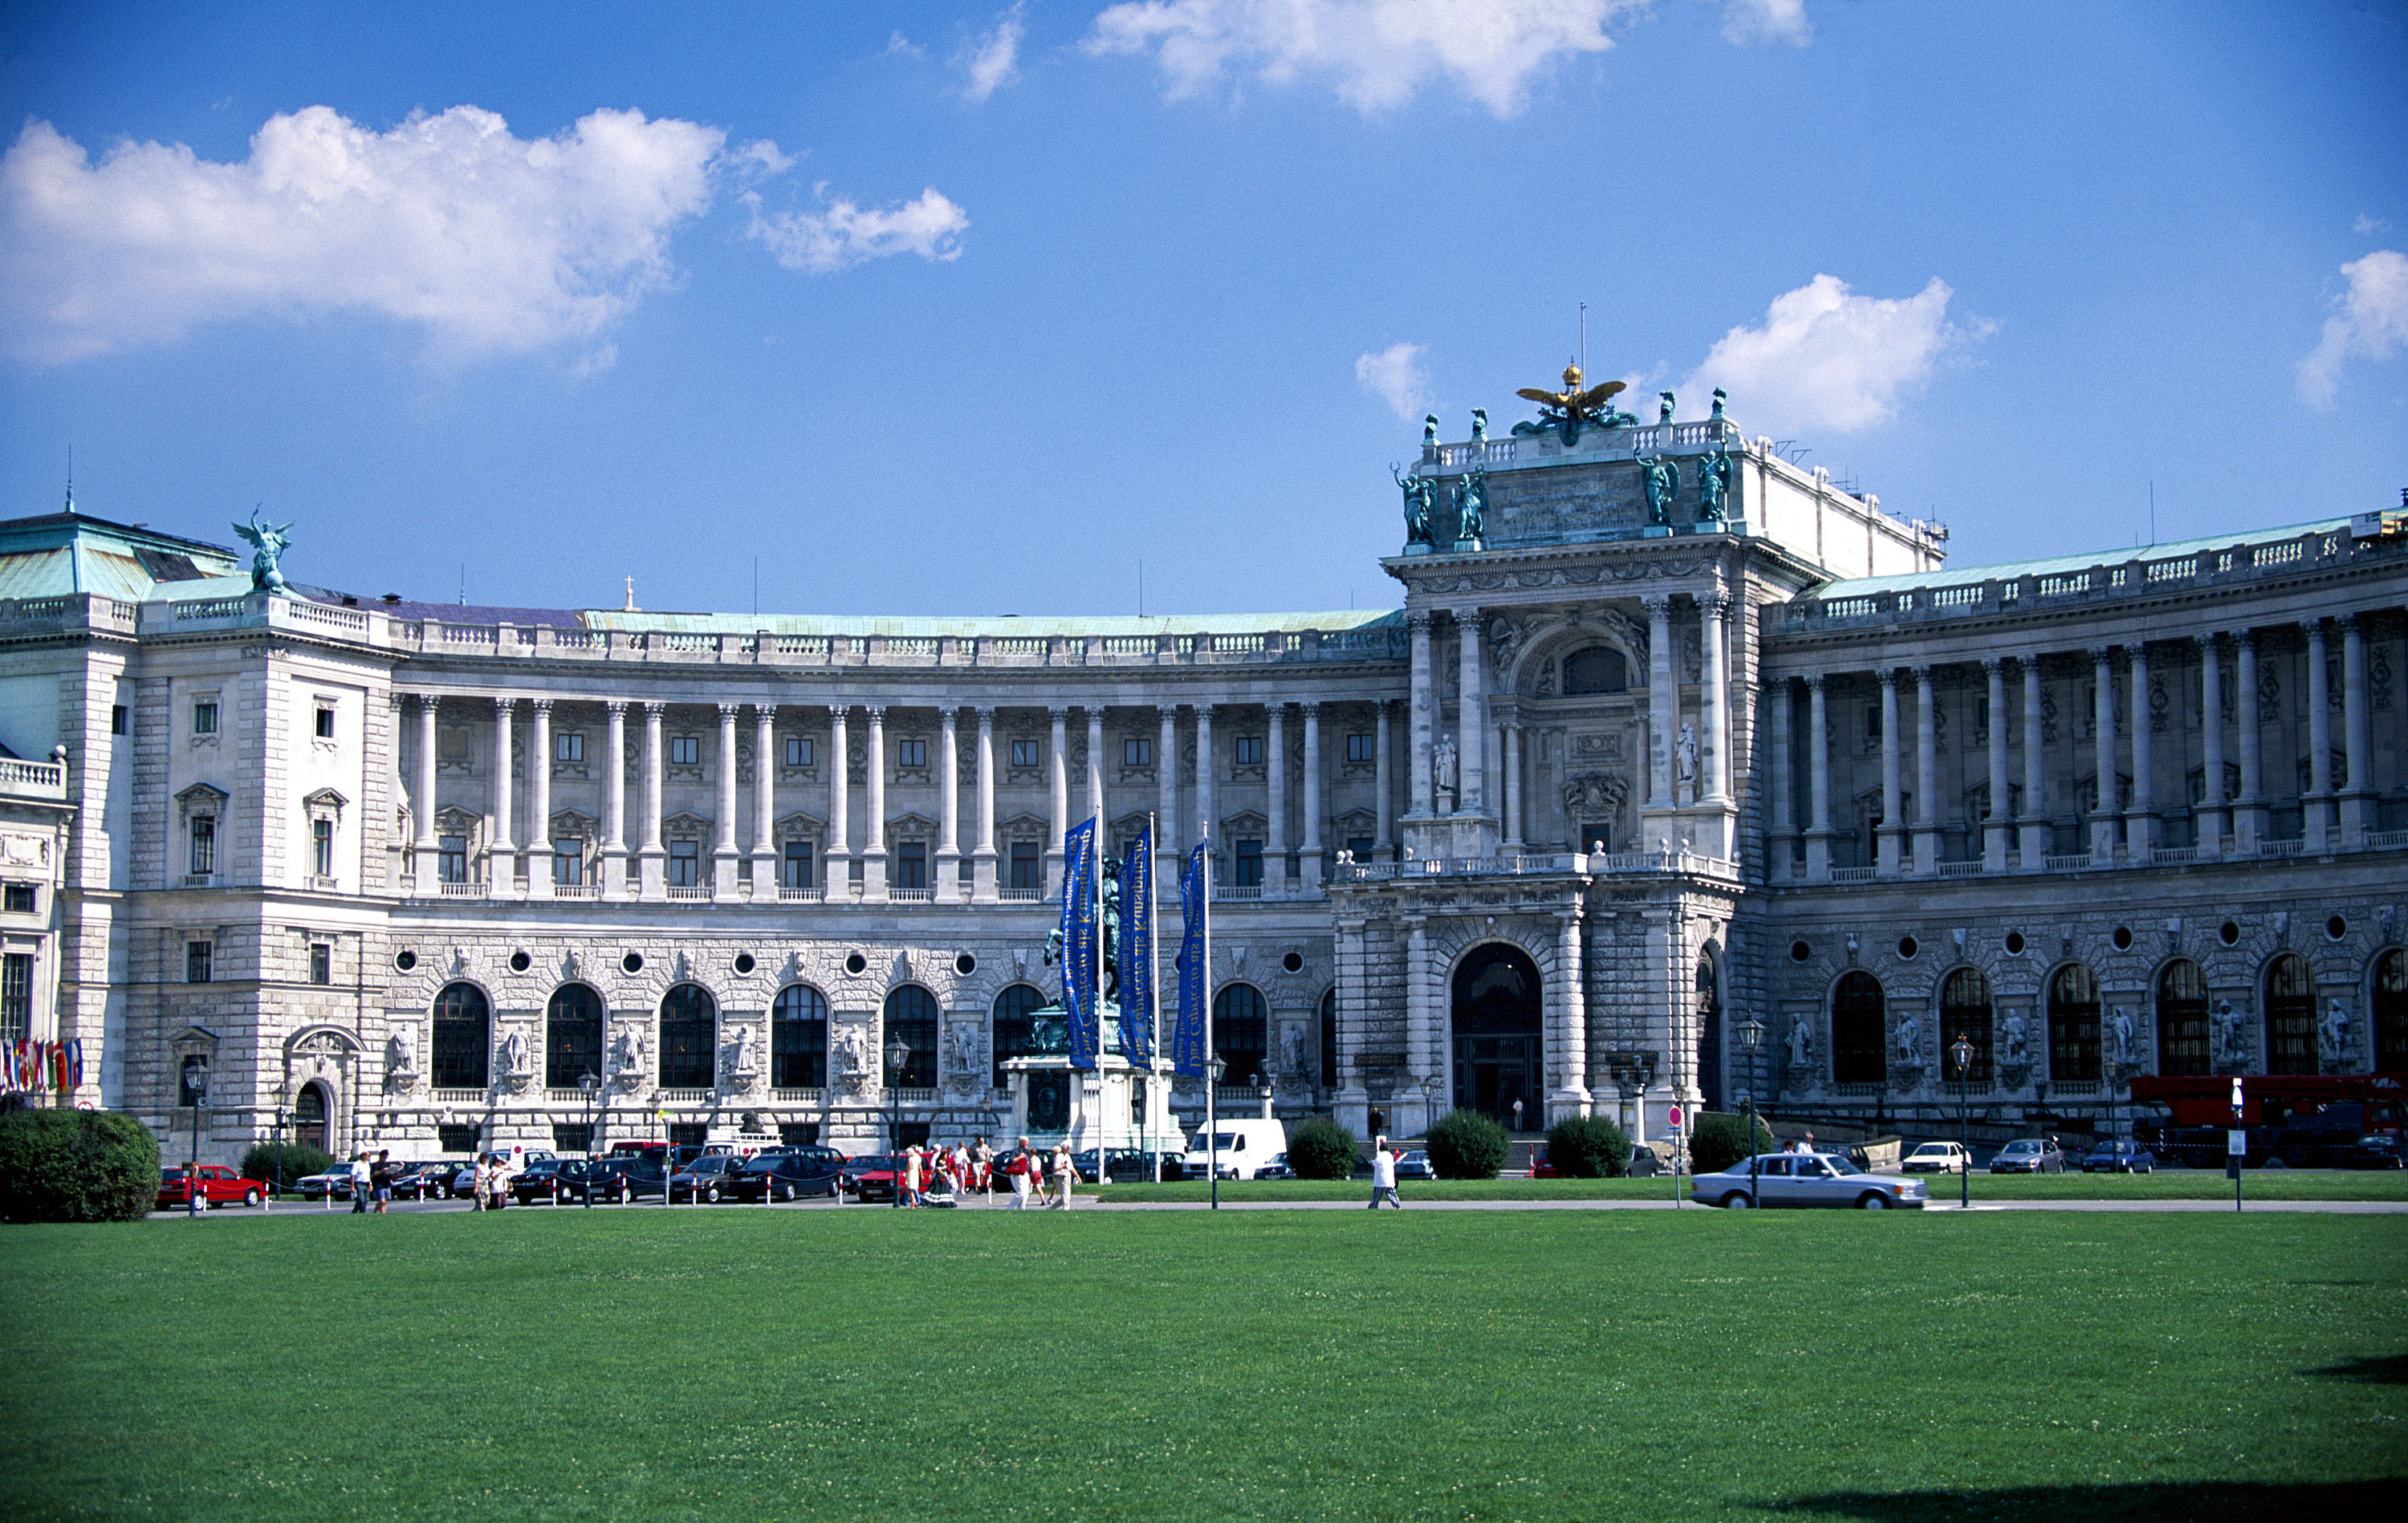 Imperial palace vienna Austria HD Wallpaper